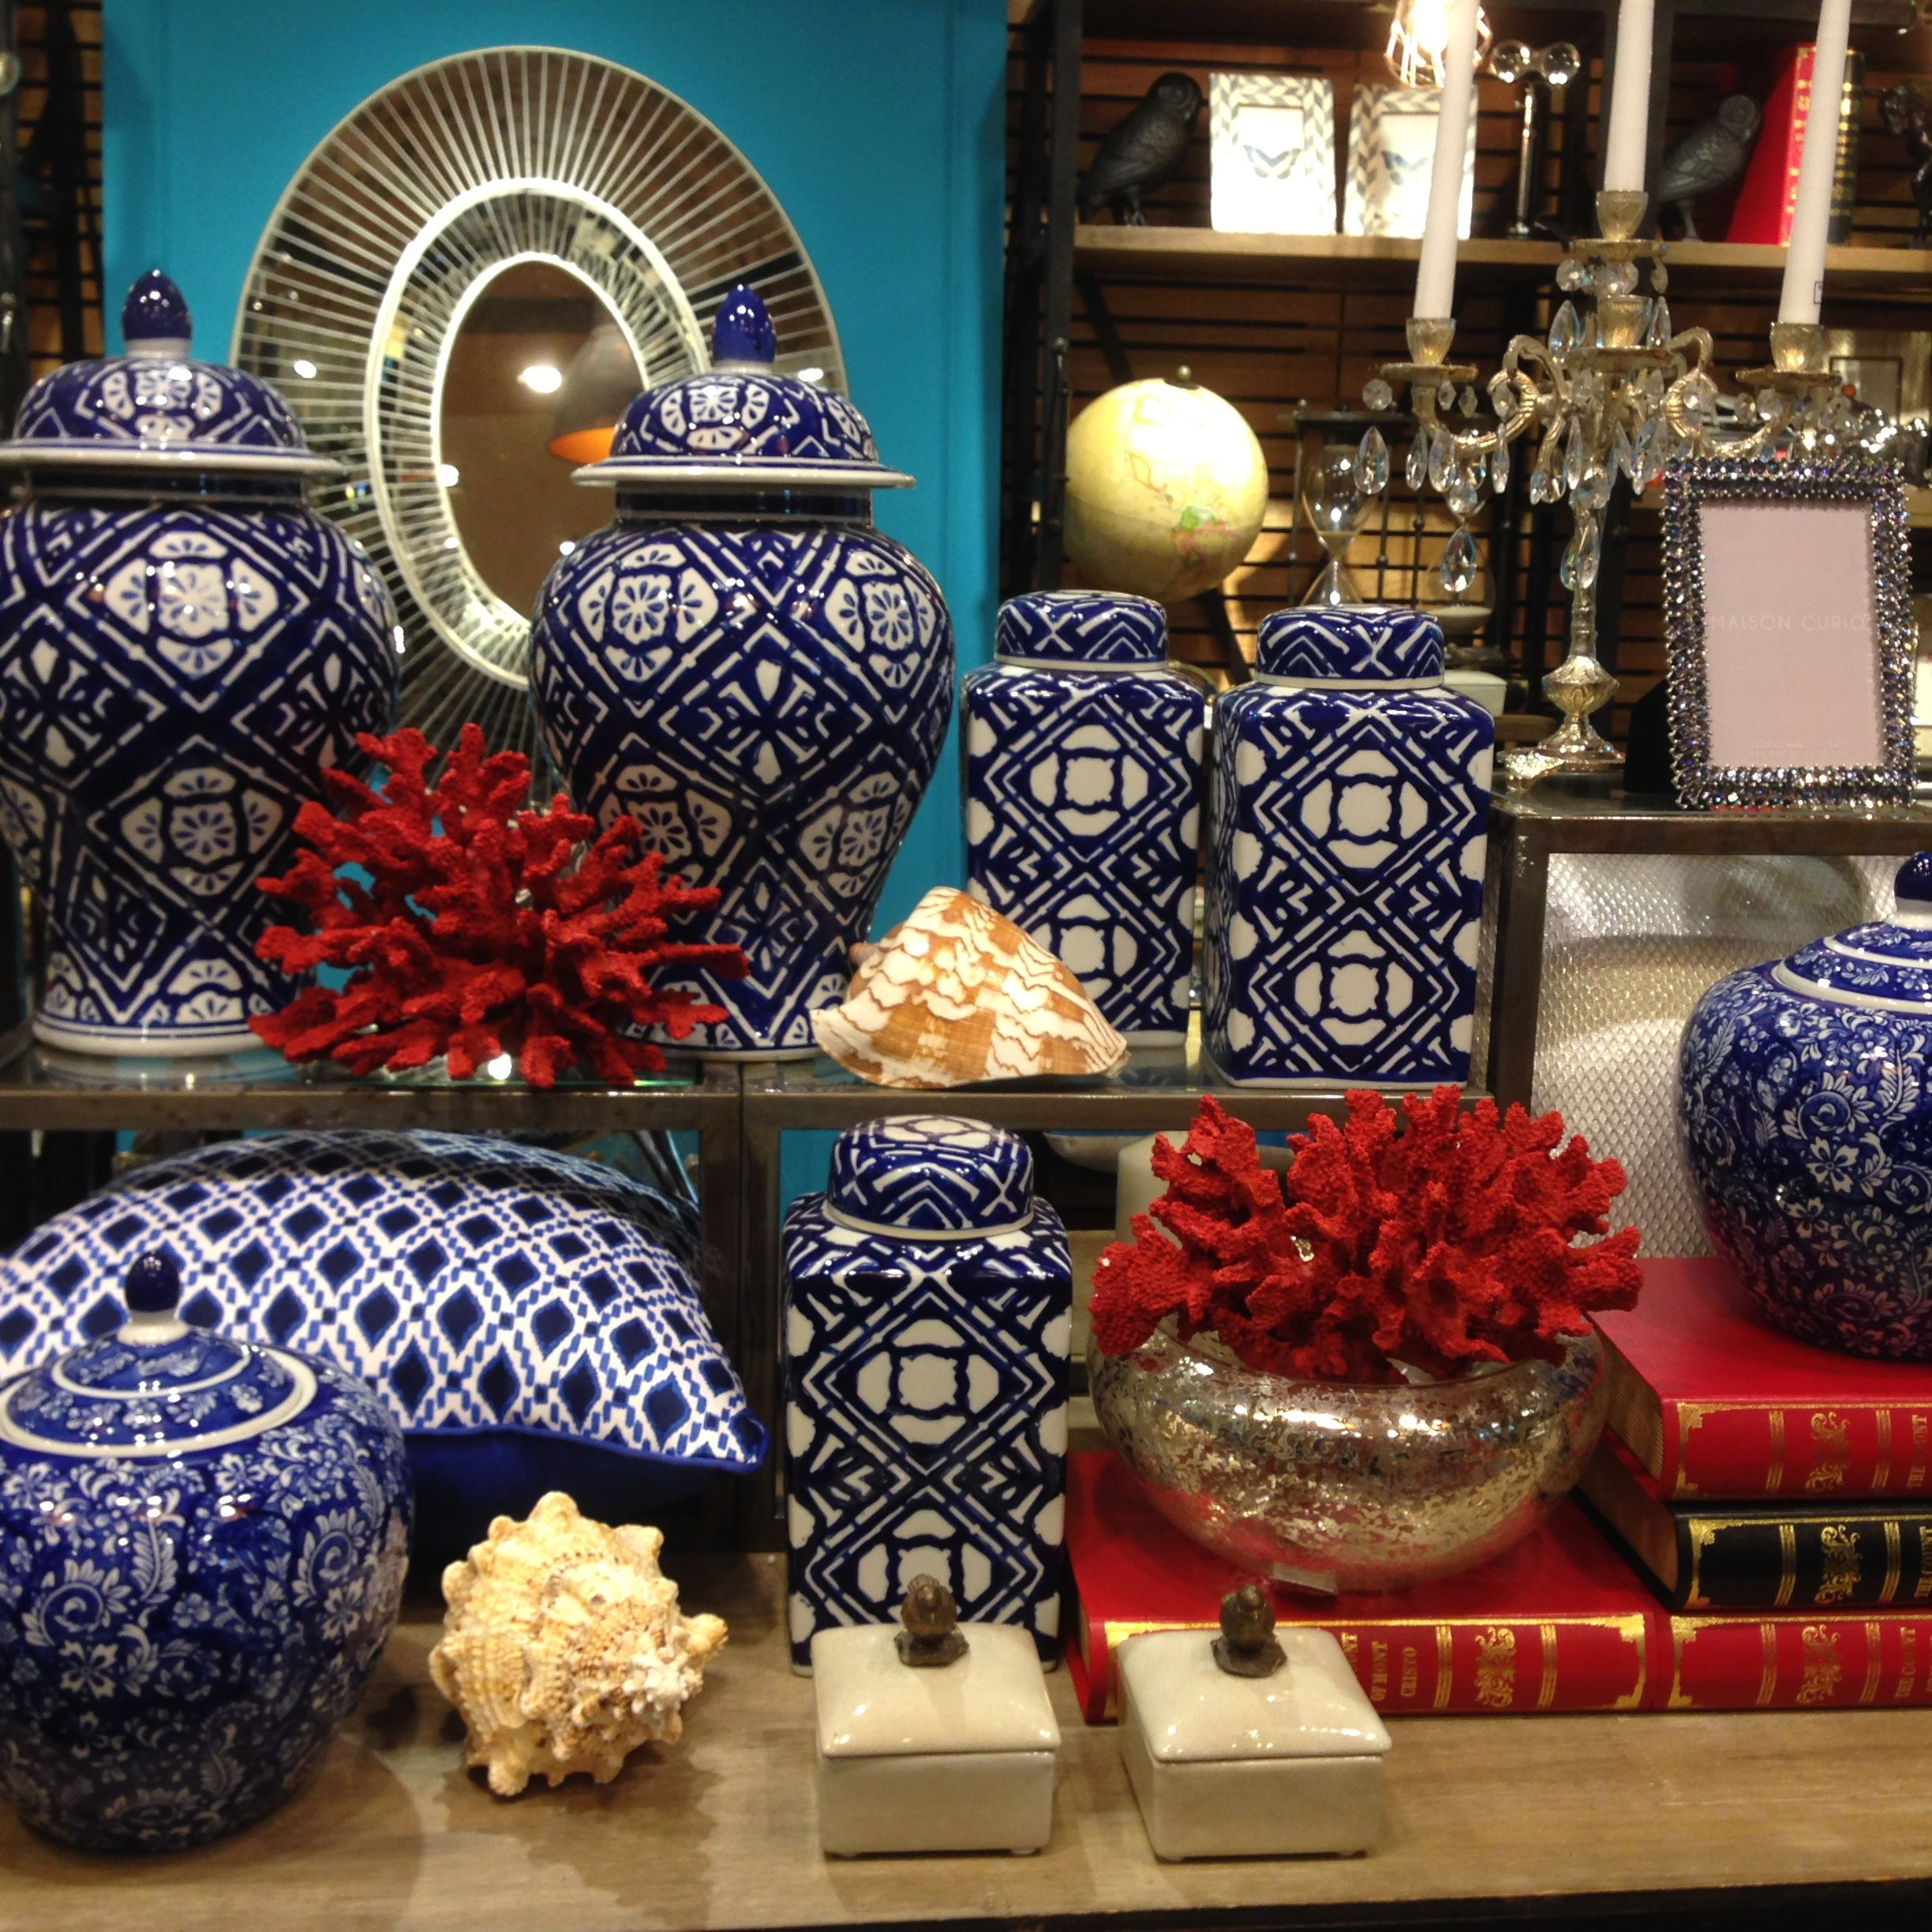 A Pop Of Red Coral Brings A Vignette Of Blue